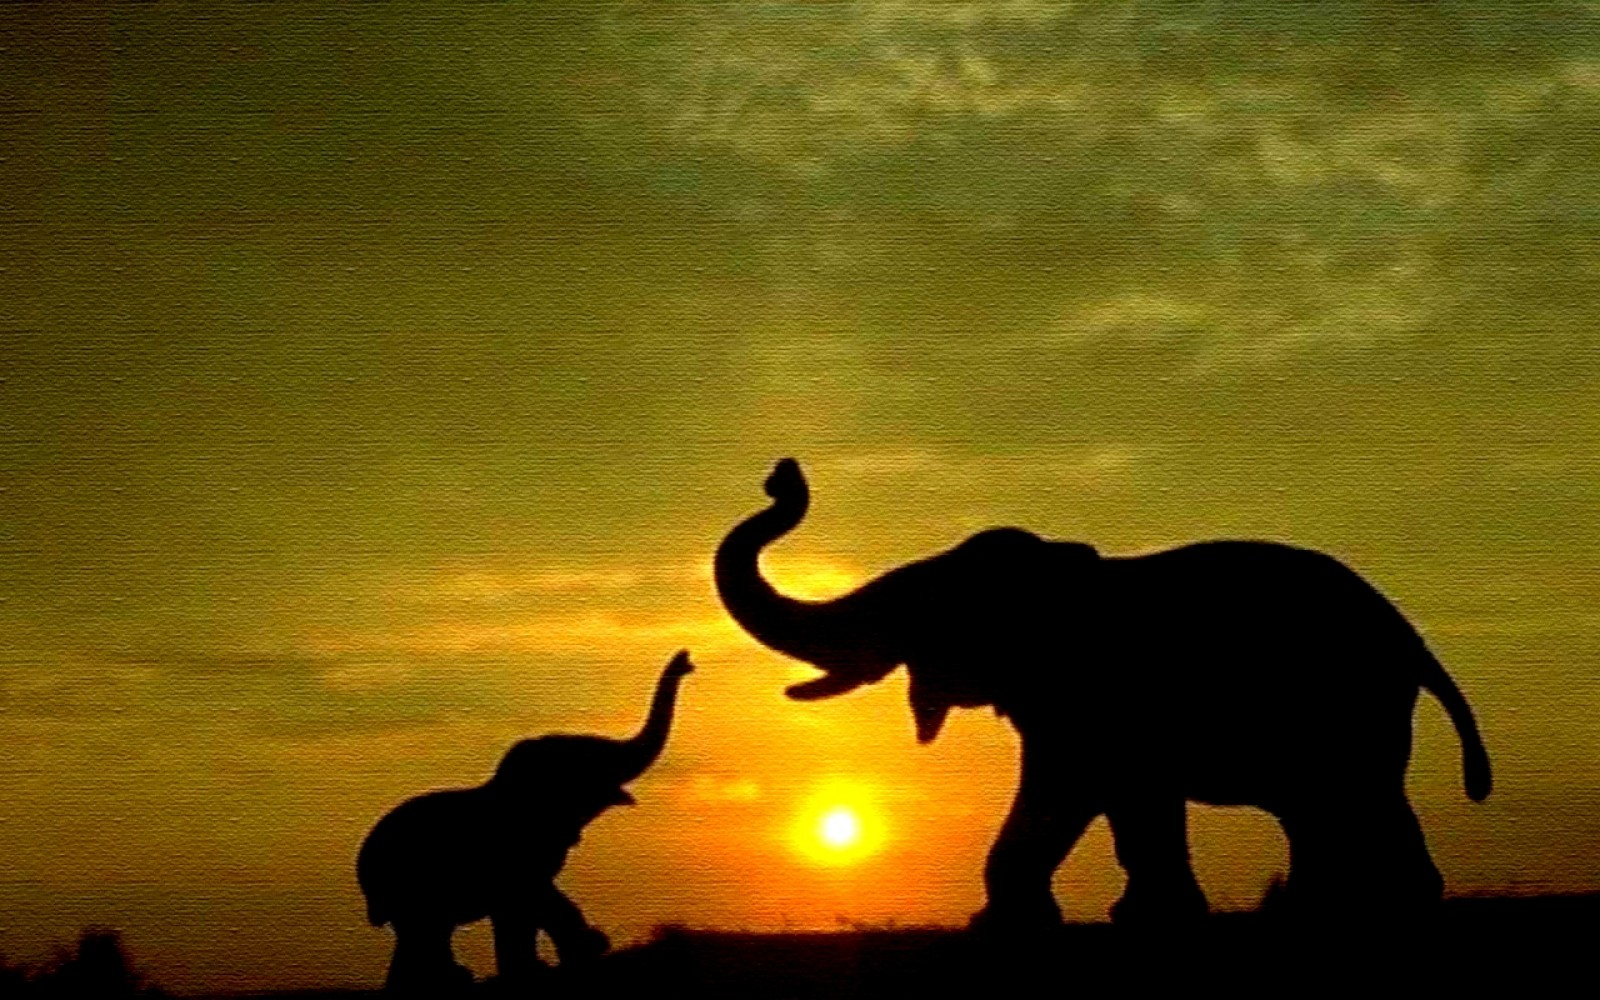 48 ] Elephant Wallpapers For Puters On WallpaperSafari